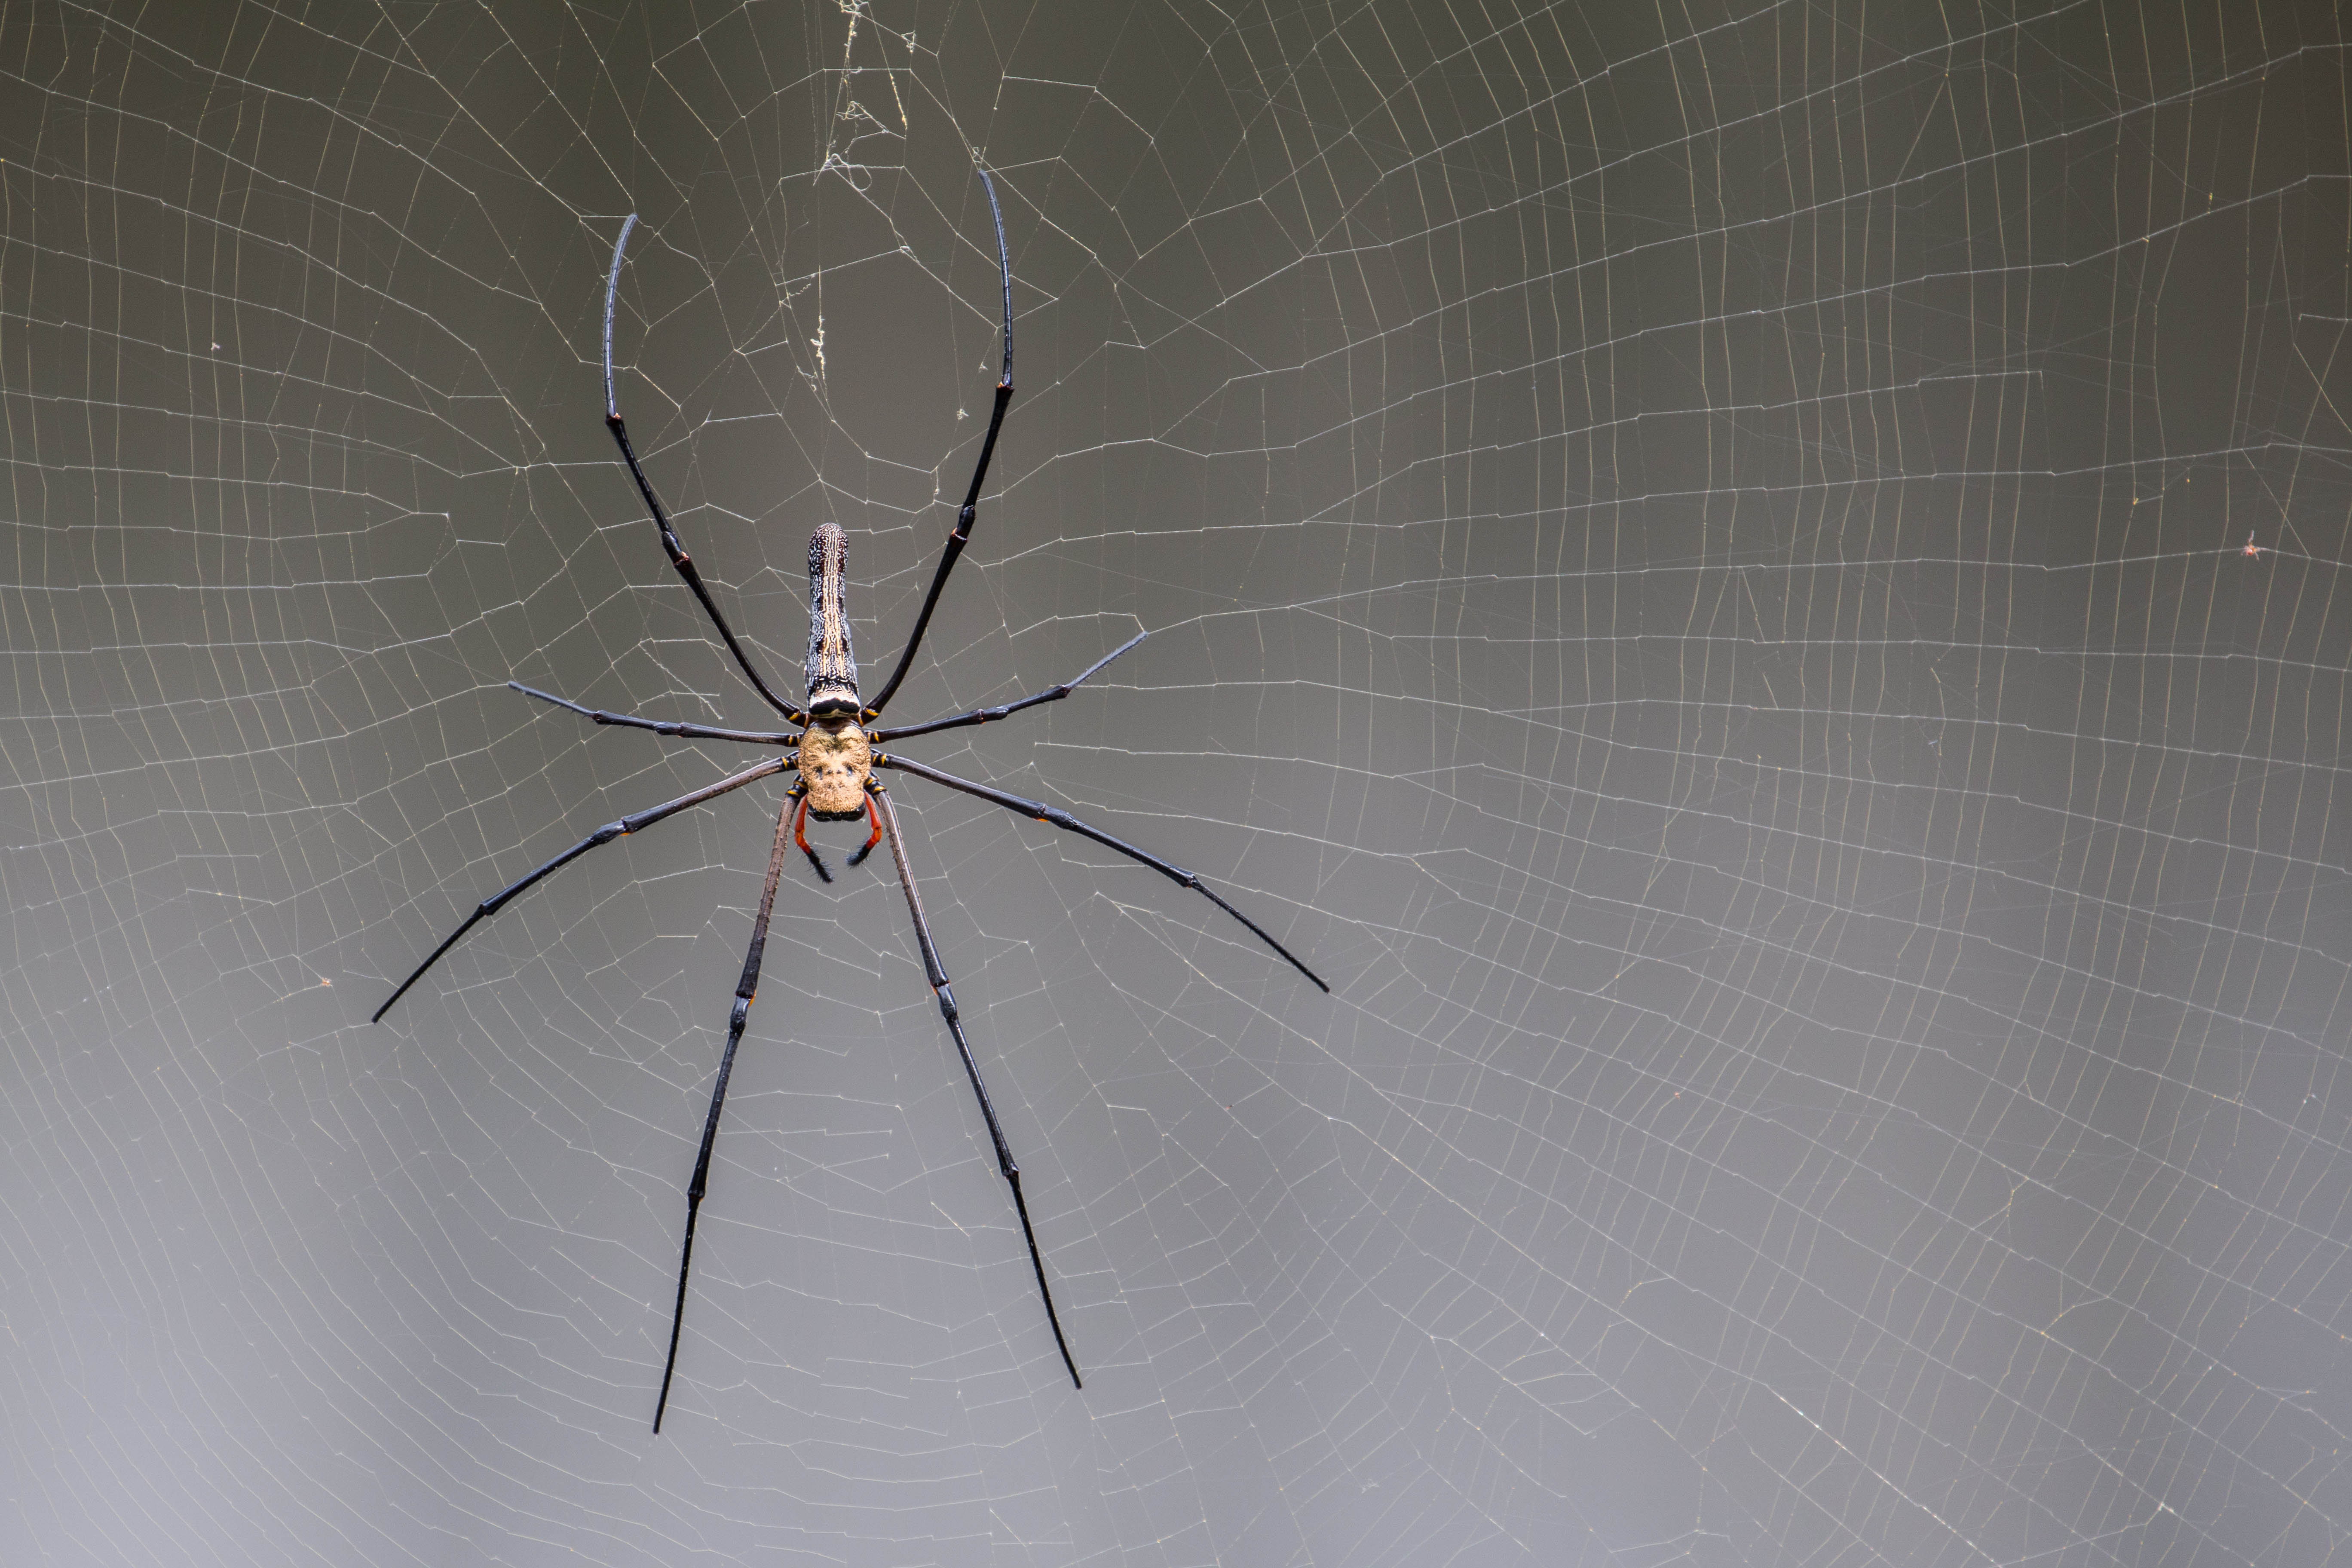 Spider from Nephilidae family